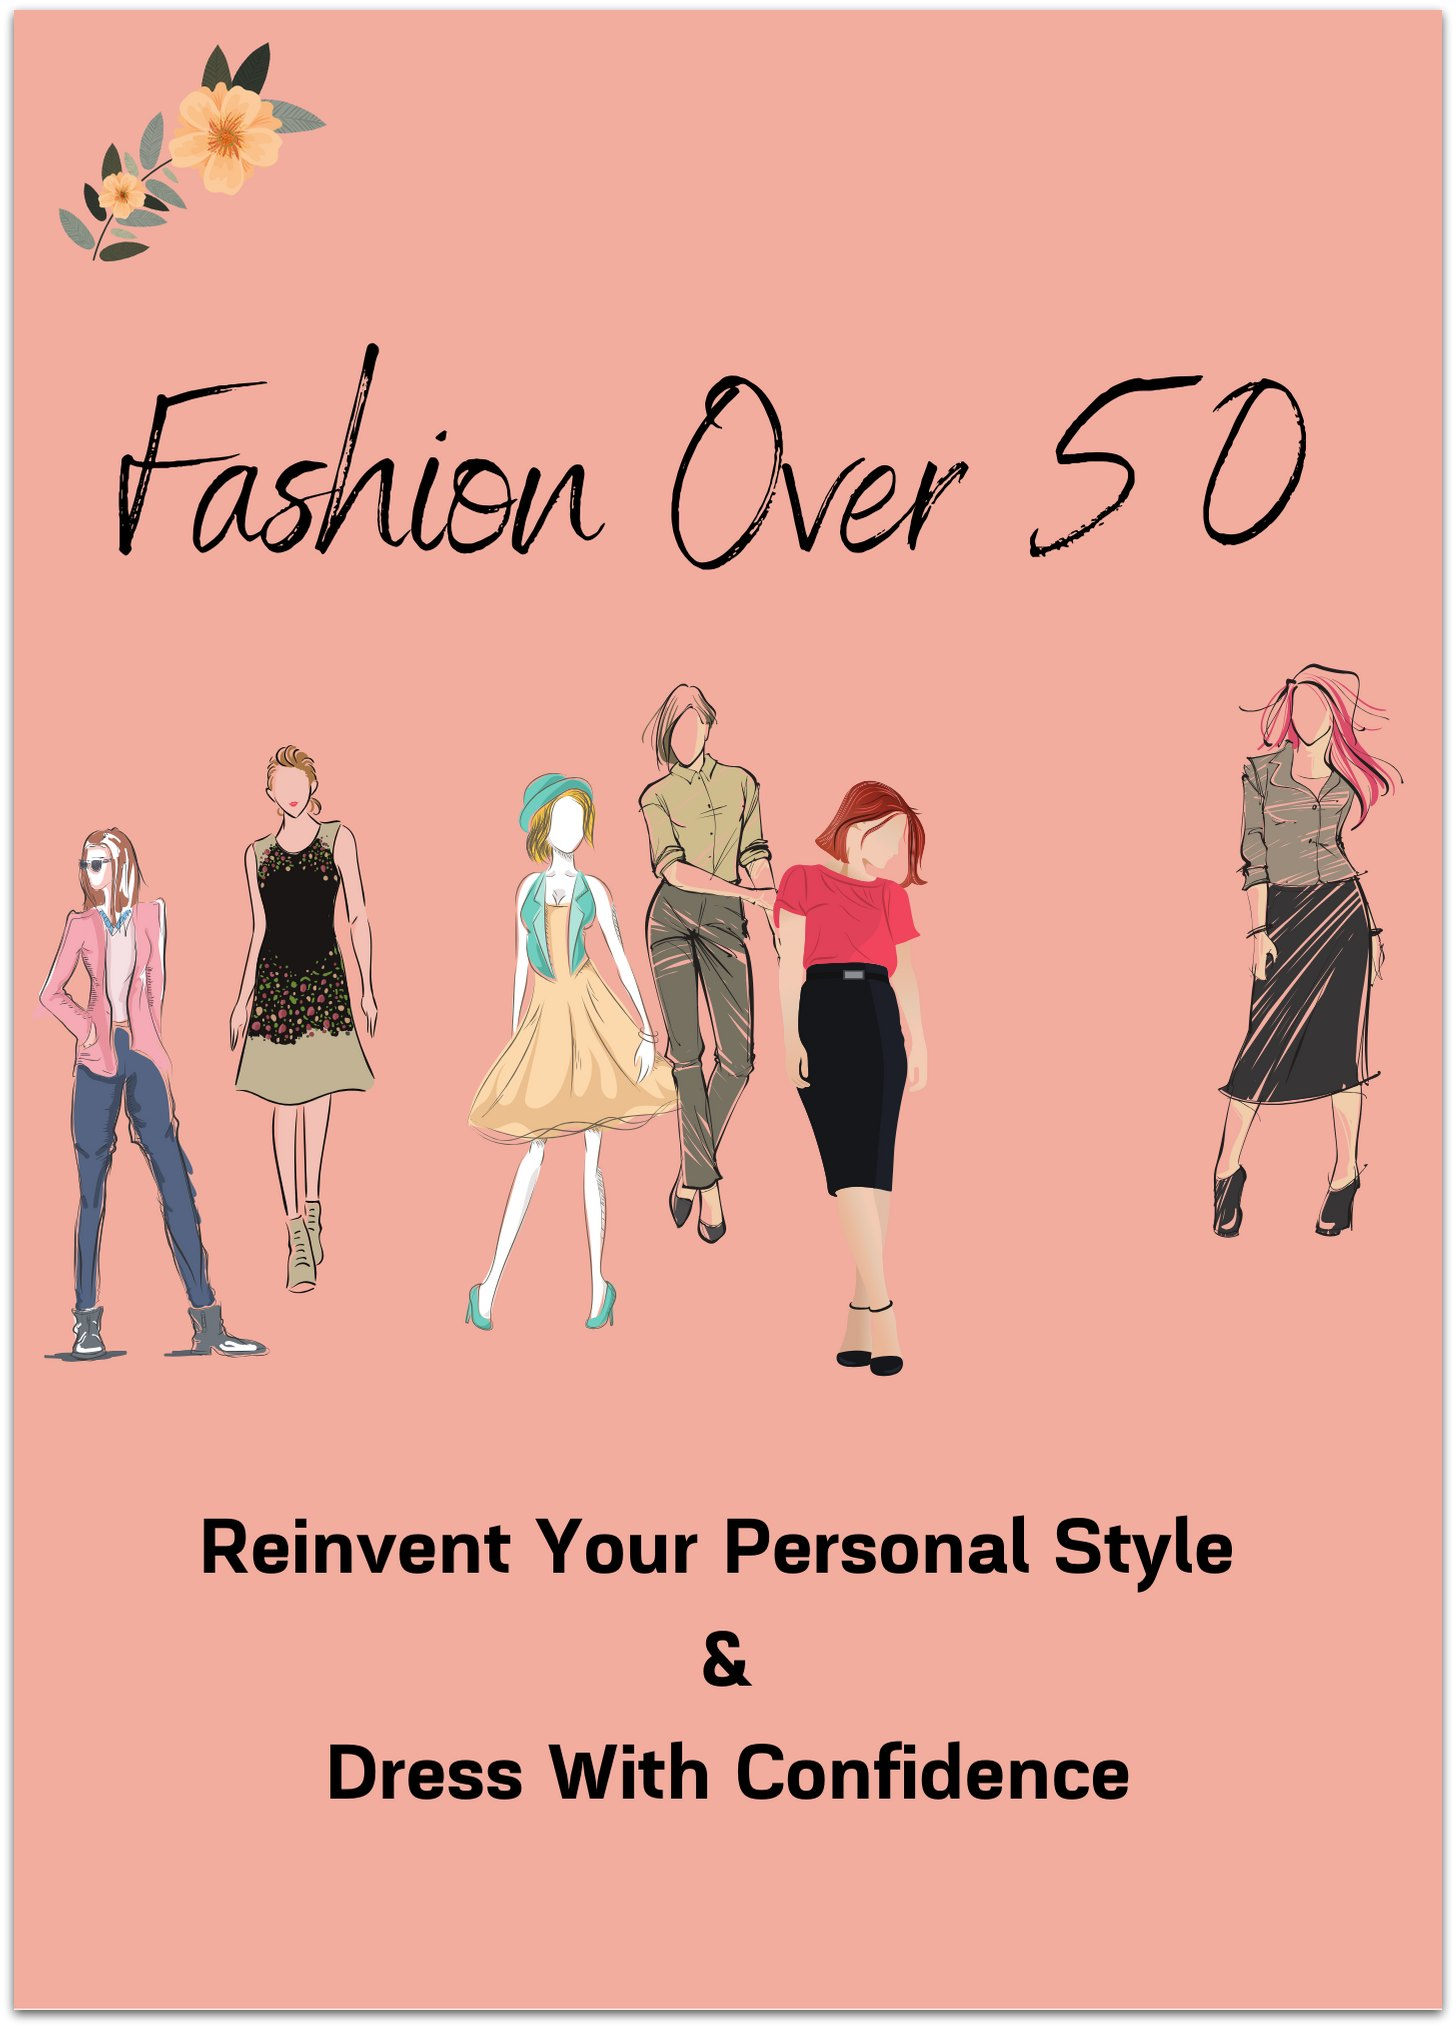 fashion over 50 - reinvent your personal style and dress with confidence